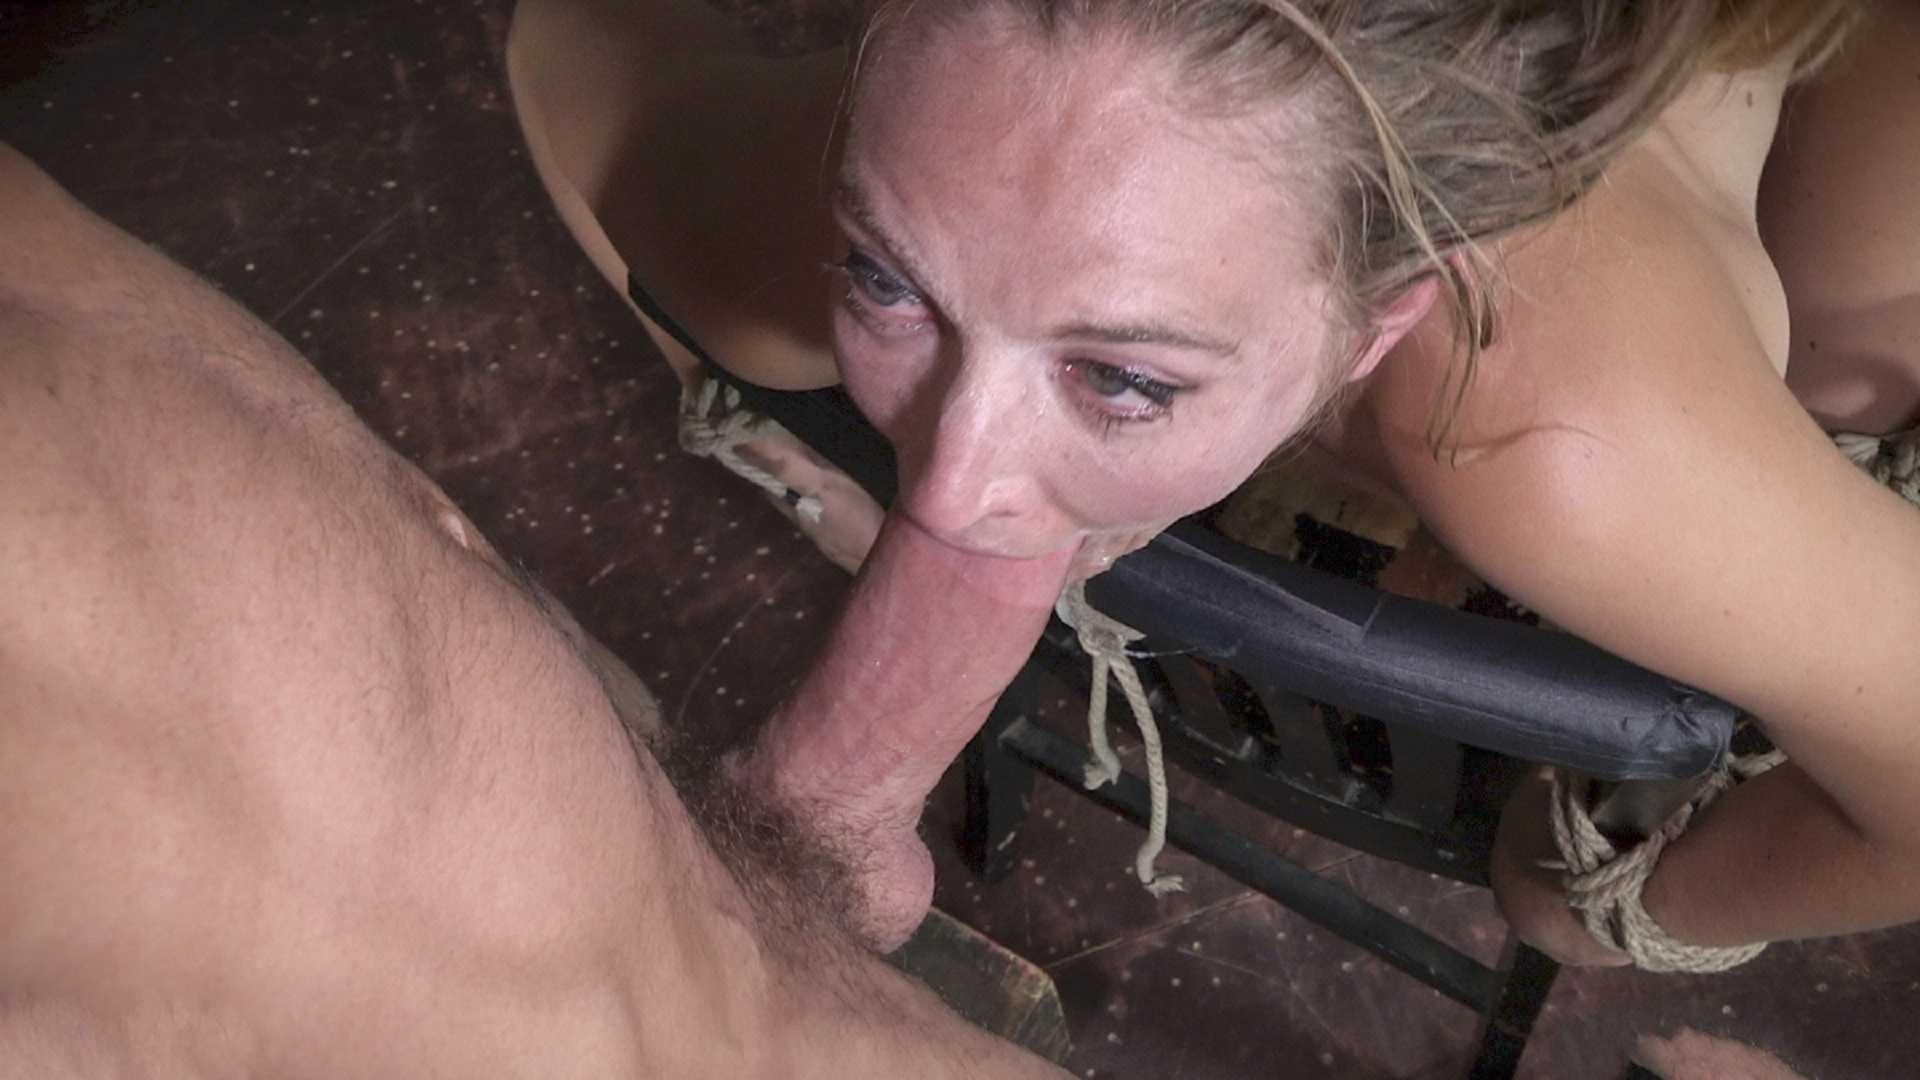 Mona Wales BaRS Part 2: Chair bound and brutally double fucked, Squirting screaming deepthroat | HD 720p | May 8, 2017